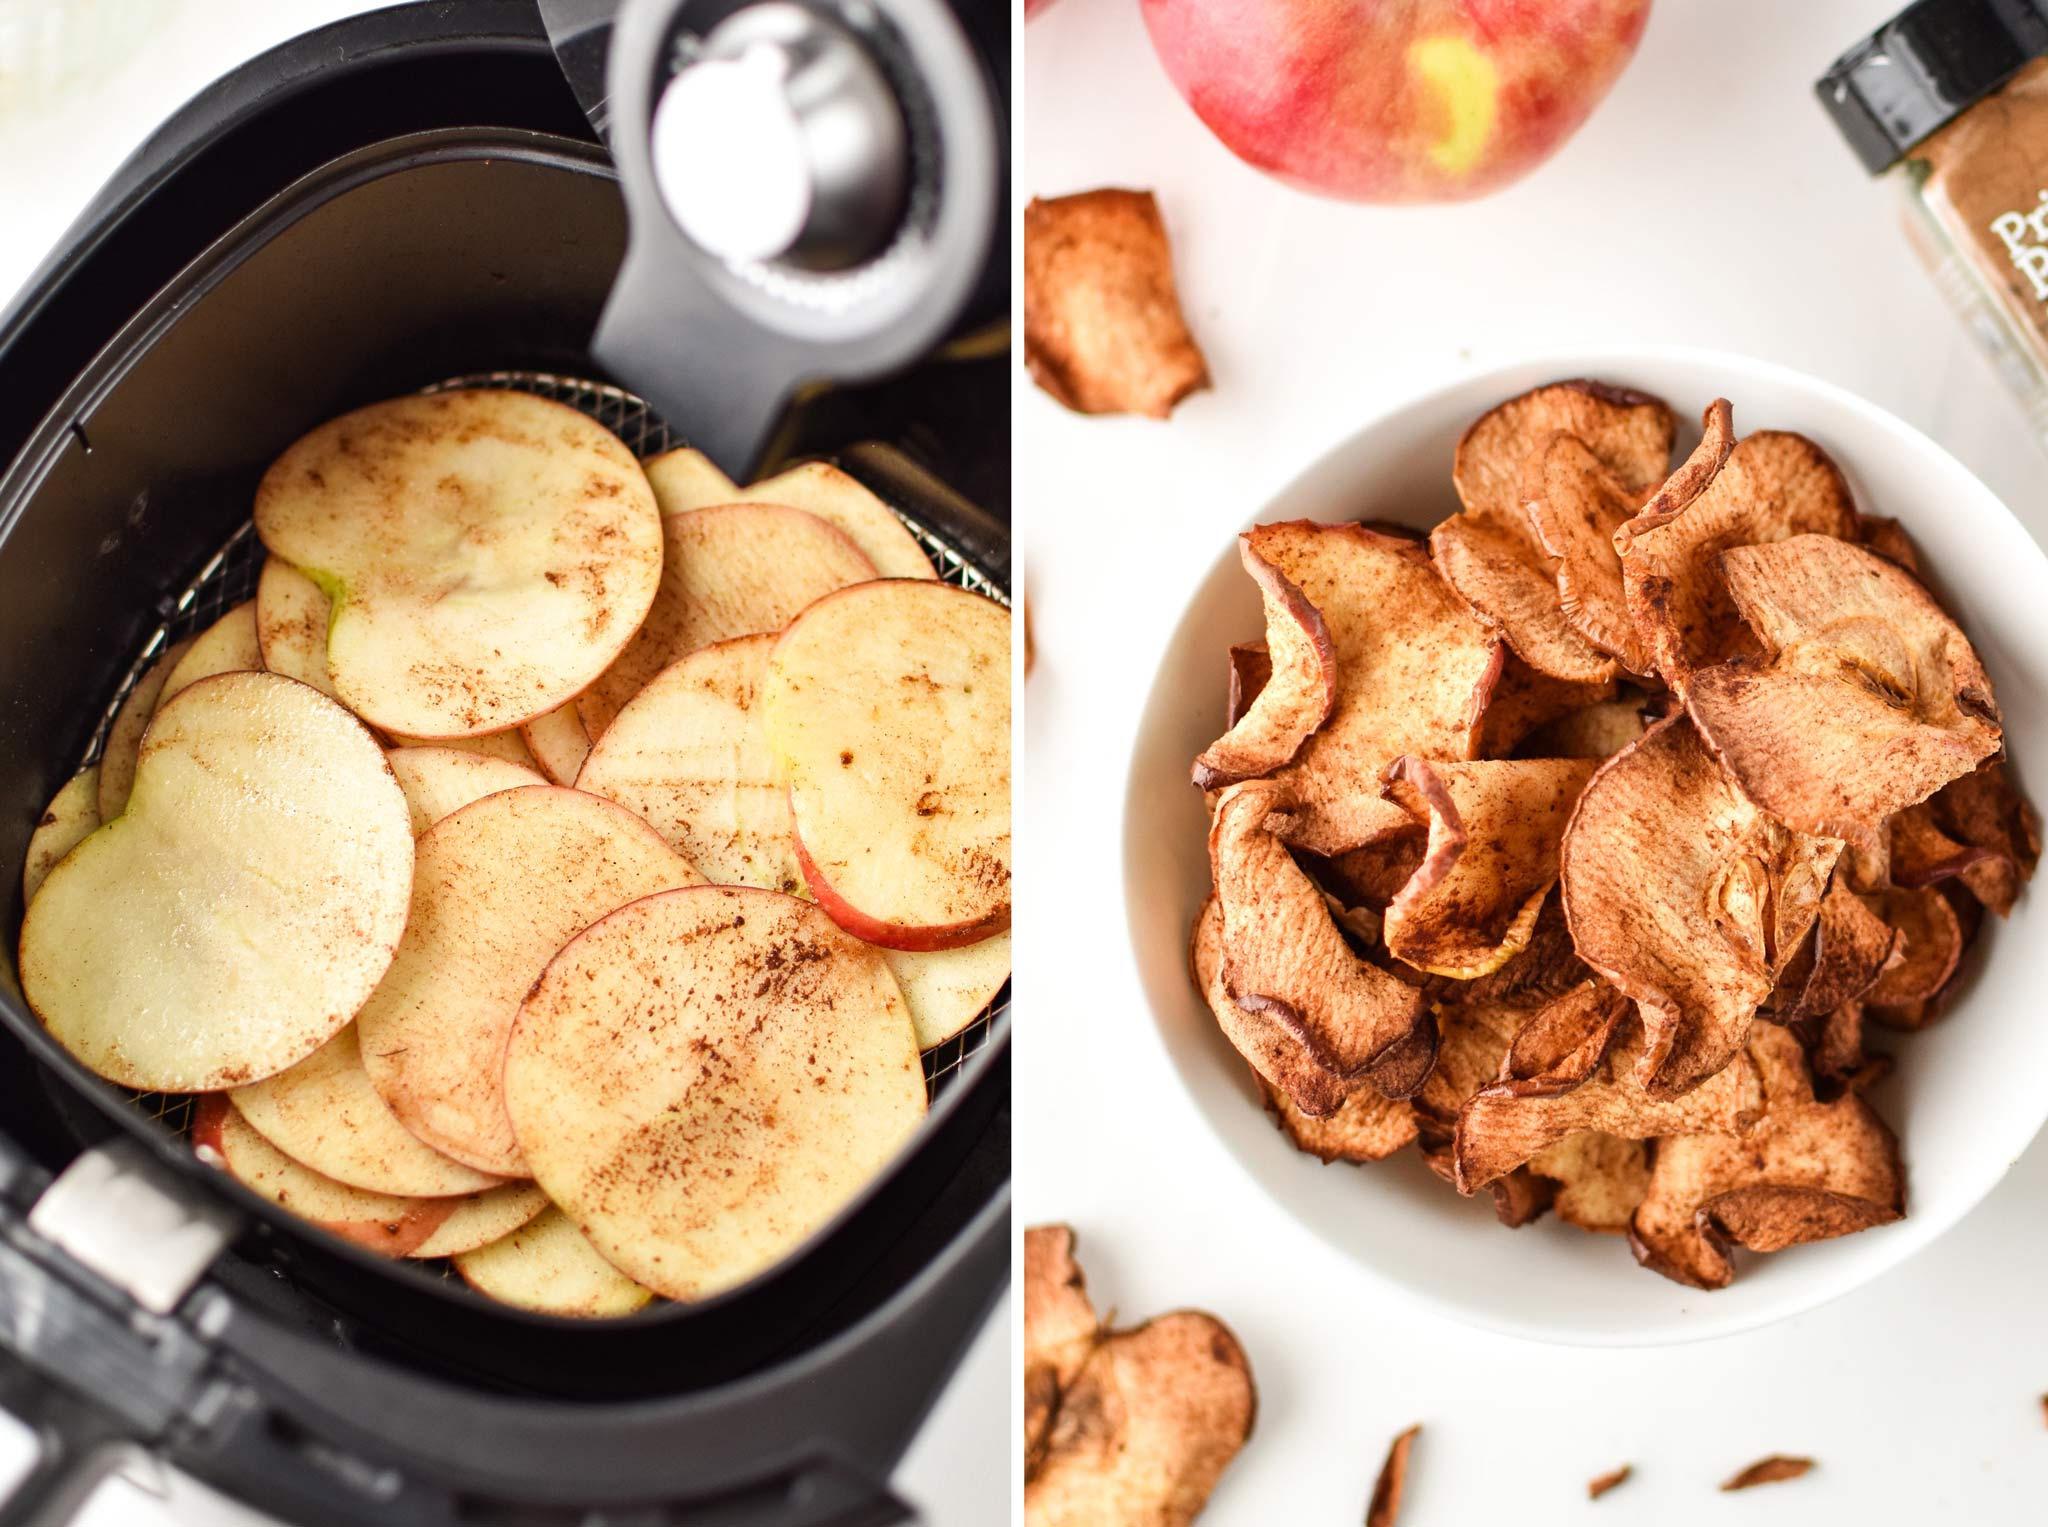 making apple chips in your air fryer isn't difficult - use one apple at a time and season with cinnamon!